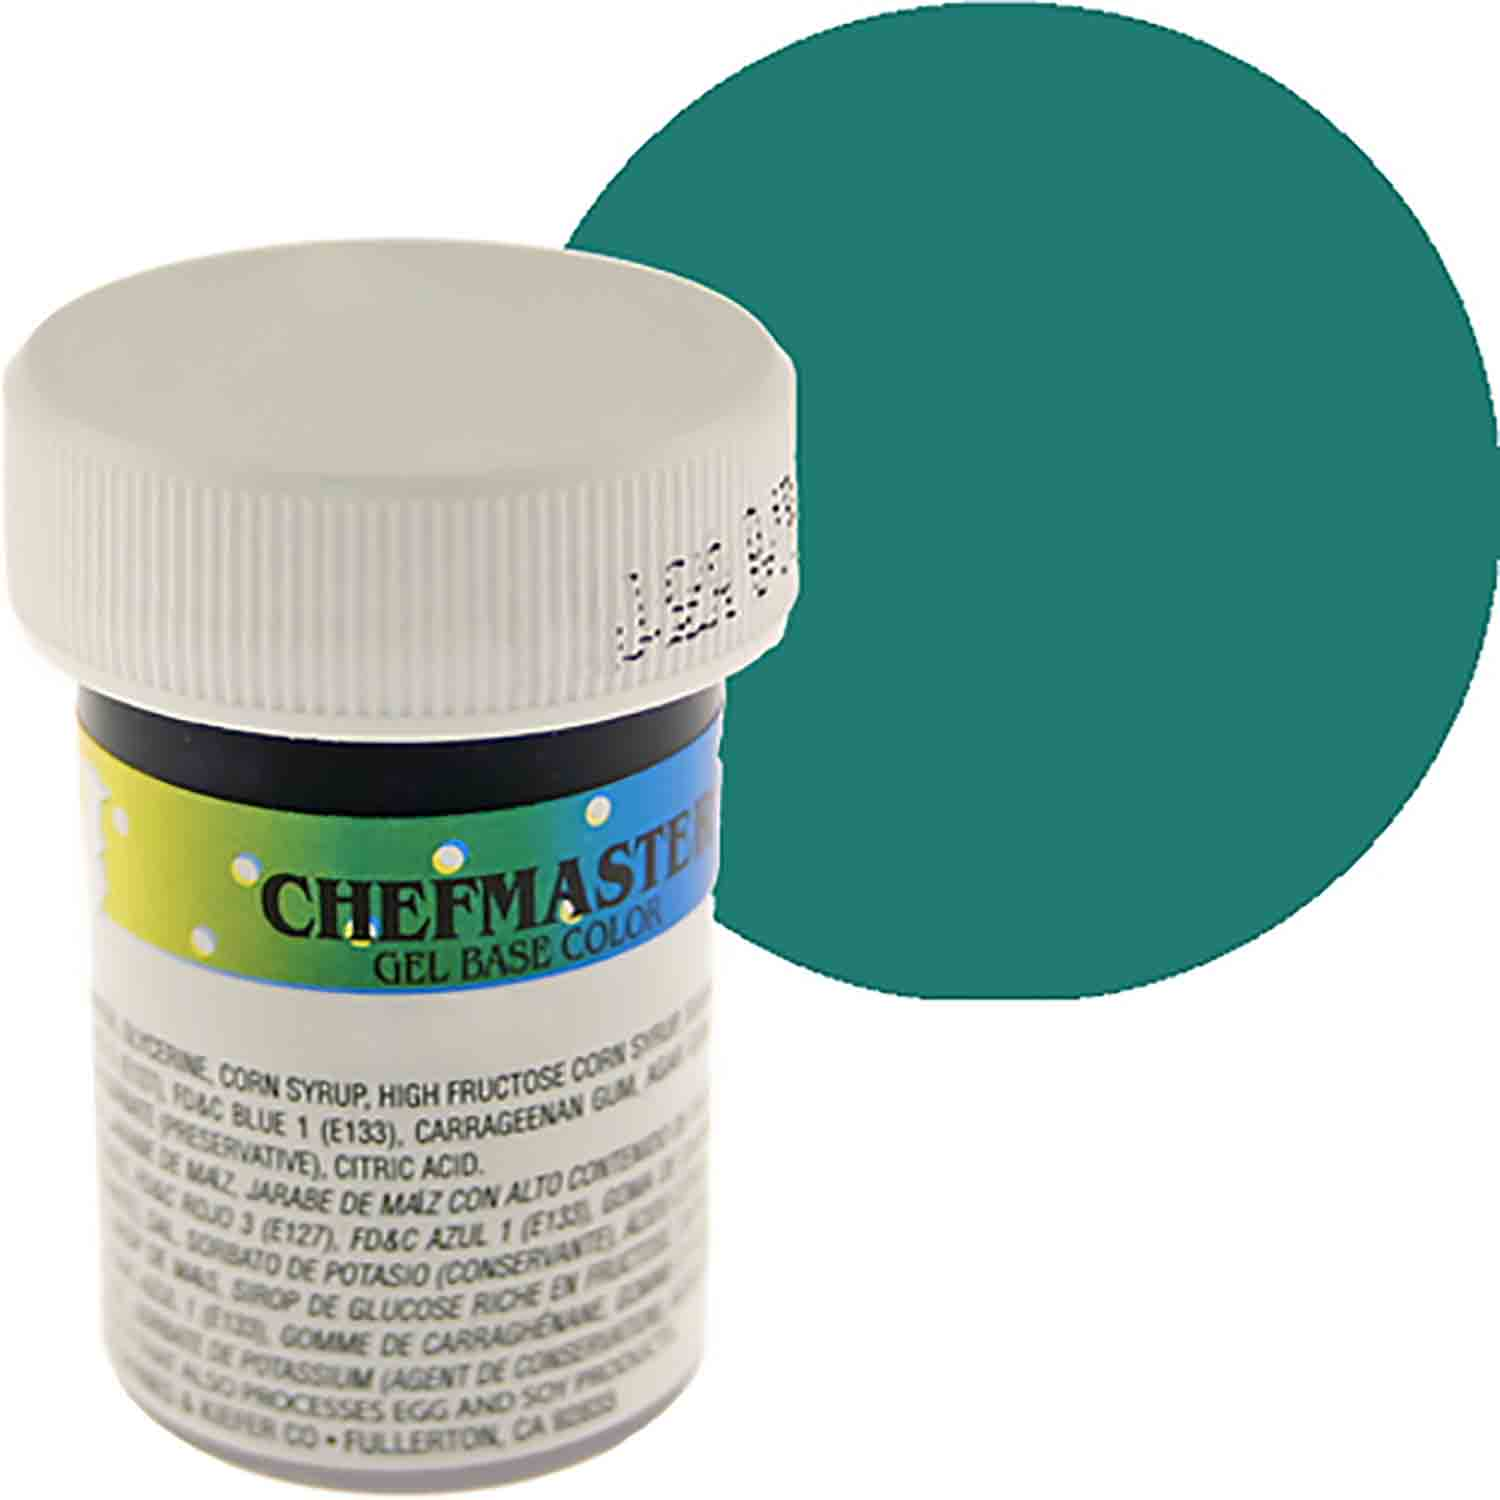 Teal Green Chefmaster Food Color Gel (Old Item # 41-2336)